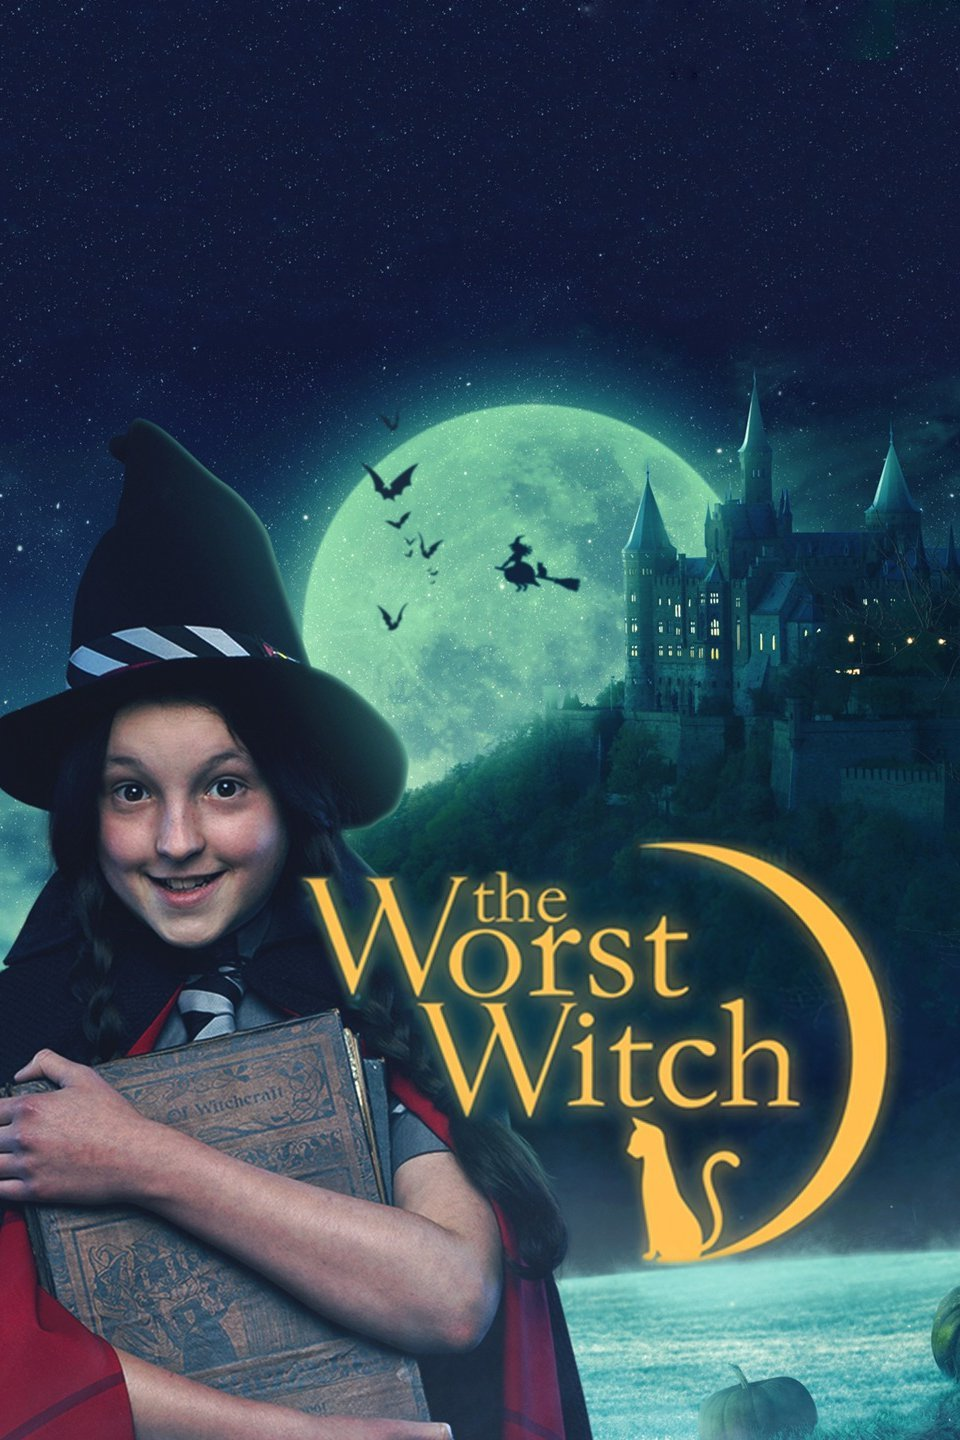 The Worst Witch S01 E06